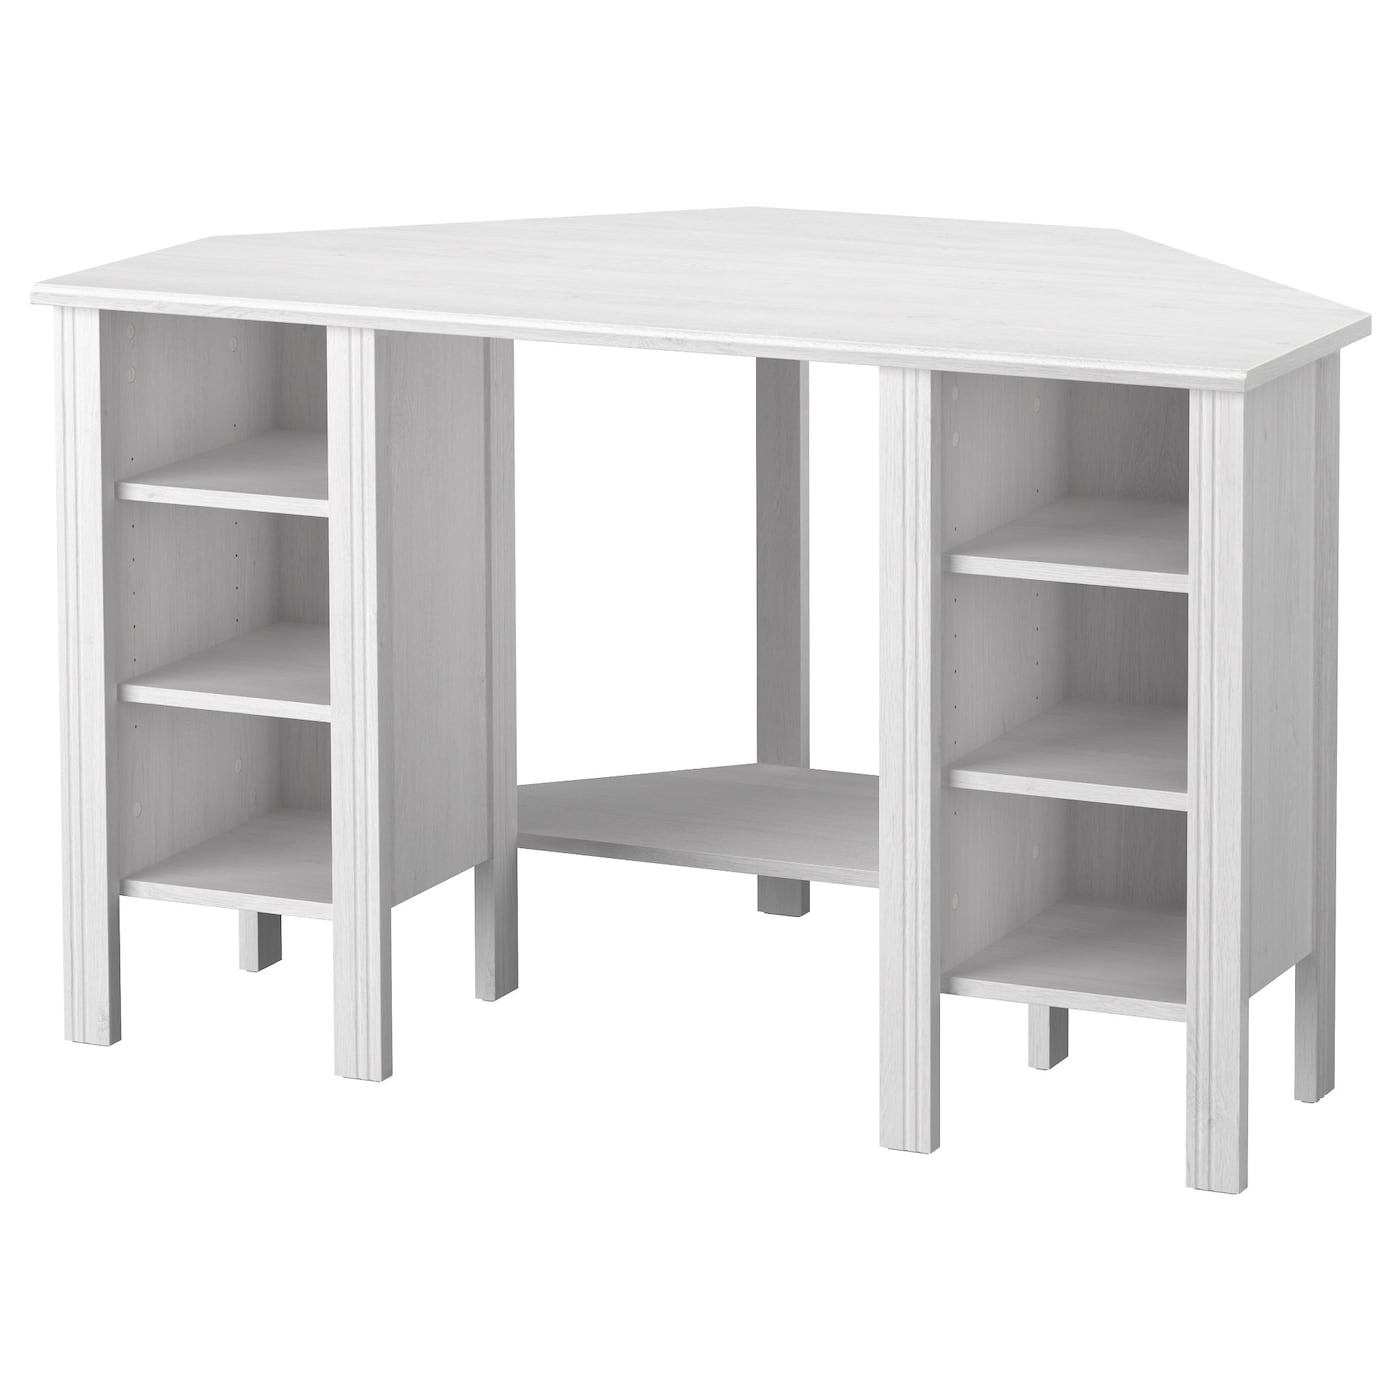 IKEA BRUSALI corner desk You can customise your storage as needed, since  the shelves are